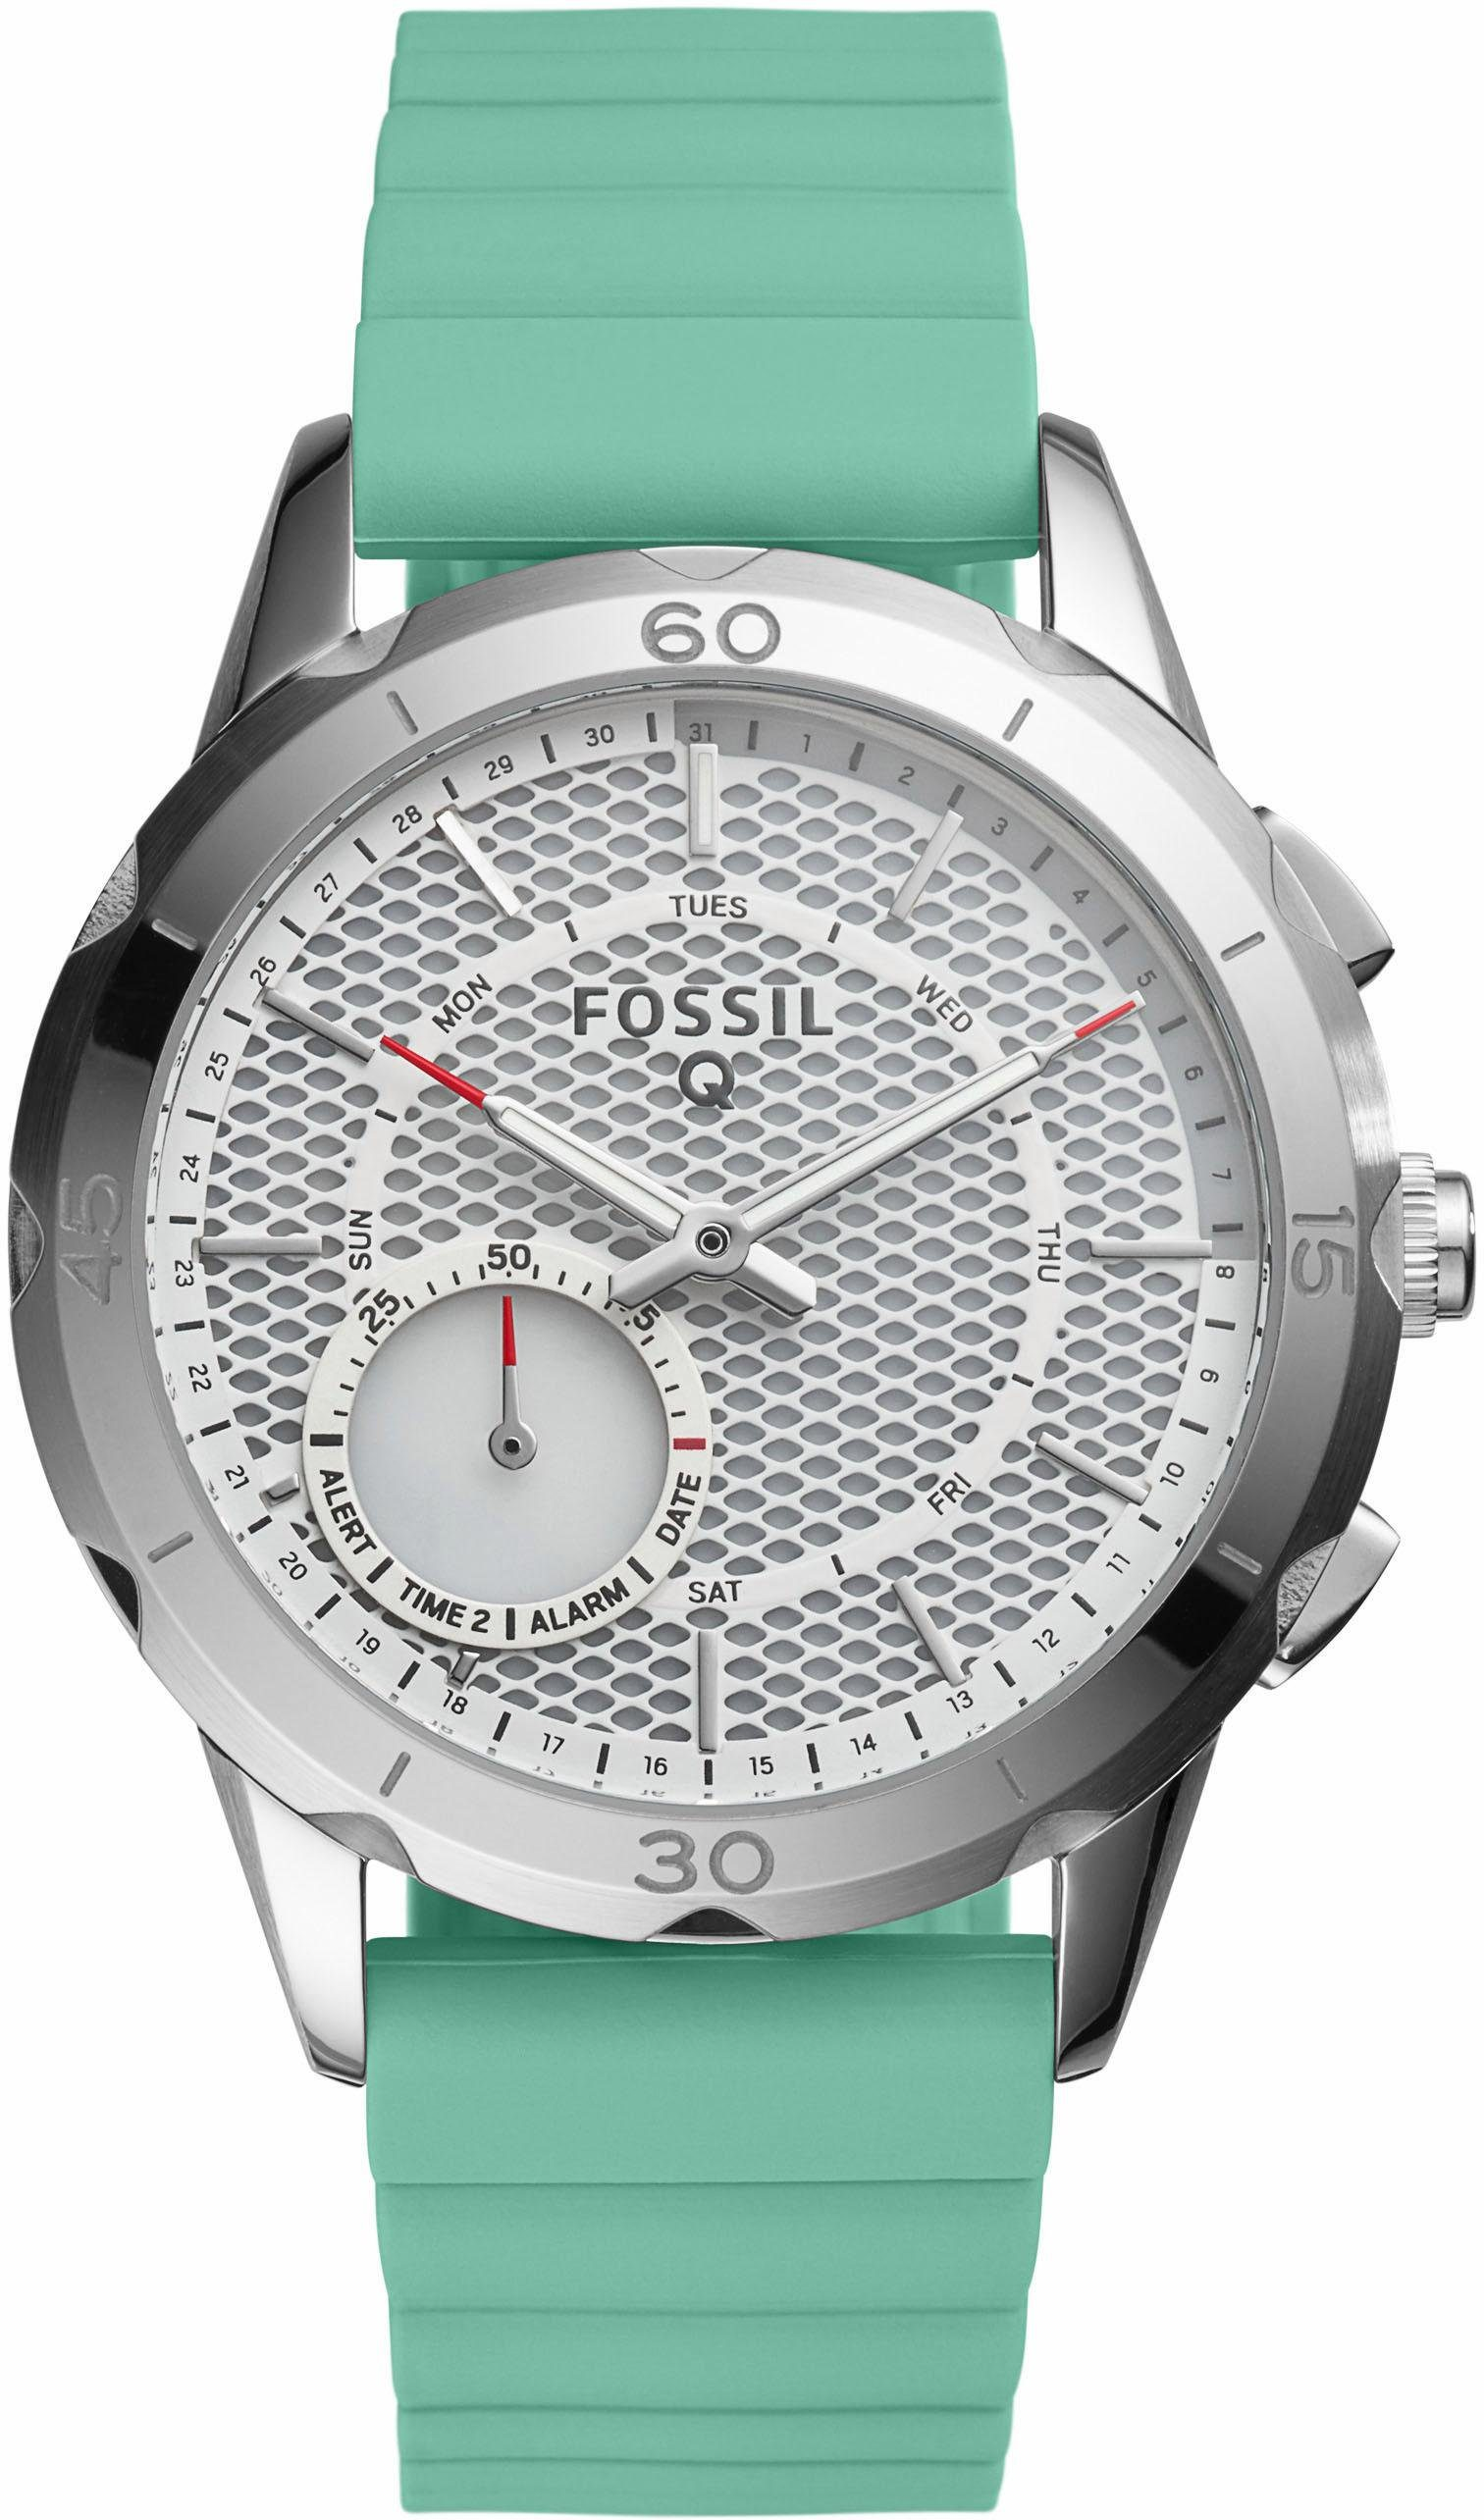 FOSSIL Q Q MODERN PURSUIT, FTW1134 Smartwatch (Android Wear)